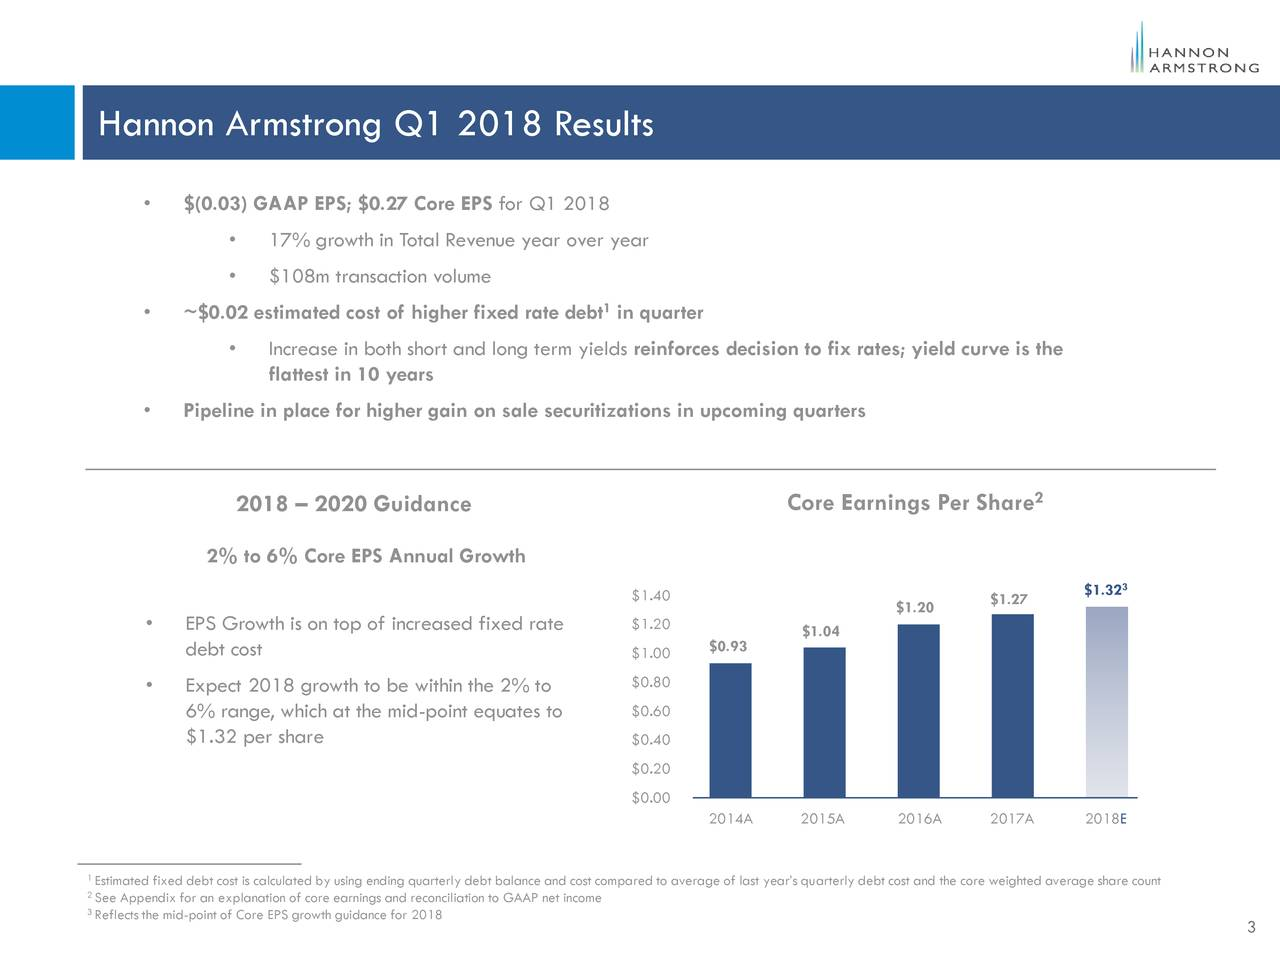 • $(0.03) GAAP EPS; $0.27 Core EPS for Q1 2018 • 17% growth in Total Revenue year over year • $108m transaction volume • ~$0.02 estimated cost of higher fixed rate debt in quarter • Increase in both short and long term yields reinforces decision to fix rates; yield curve is the flattest in 10 years • Pipeline in place for higher gain on sale securitizations in upcoming quarters 2 2018 – 2020 Guidance Core Earnings Per Share 2% to 6% Core EPS Annual Growth $1.323 $1.40 $1.20 $1.27 • EPS Growth is on top of increased fixed rate $1.20 $1.04 $0.93 debt cost $1.00 • Expect 2018 growth to be within the 2% to $0.80 6% range, which at the mid-point equates to $0.60 $1.32 per share $0.40 $0.20 $0.00 2014A 2015A 2016A 2017A 2018E 1Estimated fixed debt cost is calculated by using ending quarterly debt balance and cost compared to average of last year's quarterly debt cost and the core weighted average share count 2See Appendix for an explanation of core earnings and reconciliation to GAAP net income 3Reflects the mid-point of Core EPS growth guidance for 2018 3